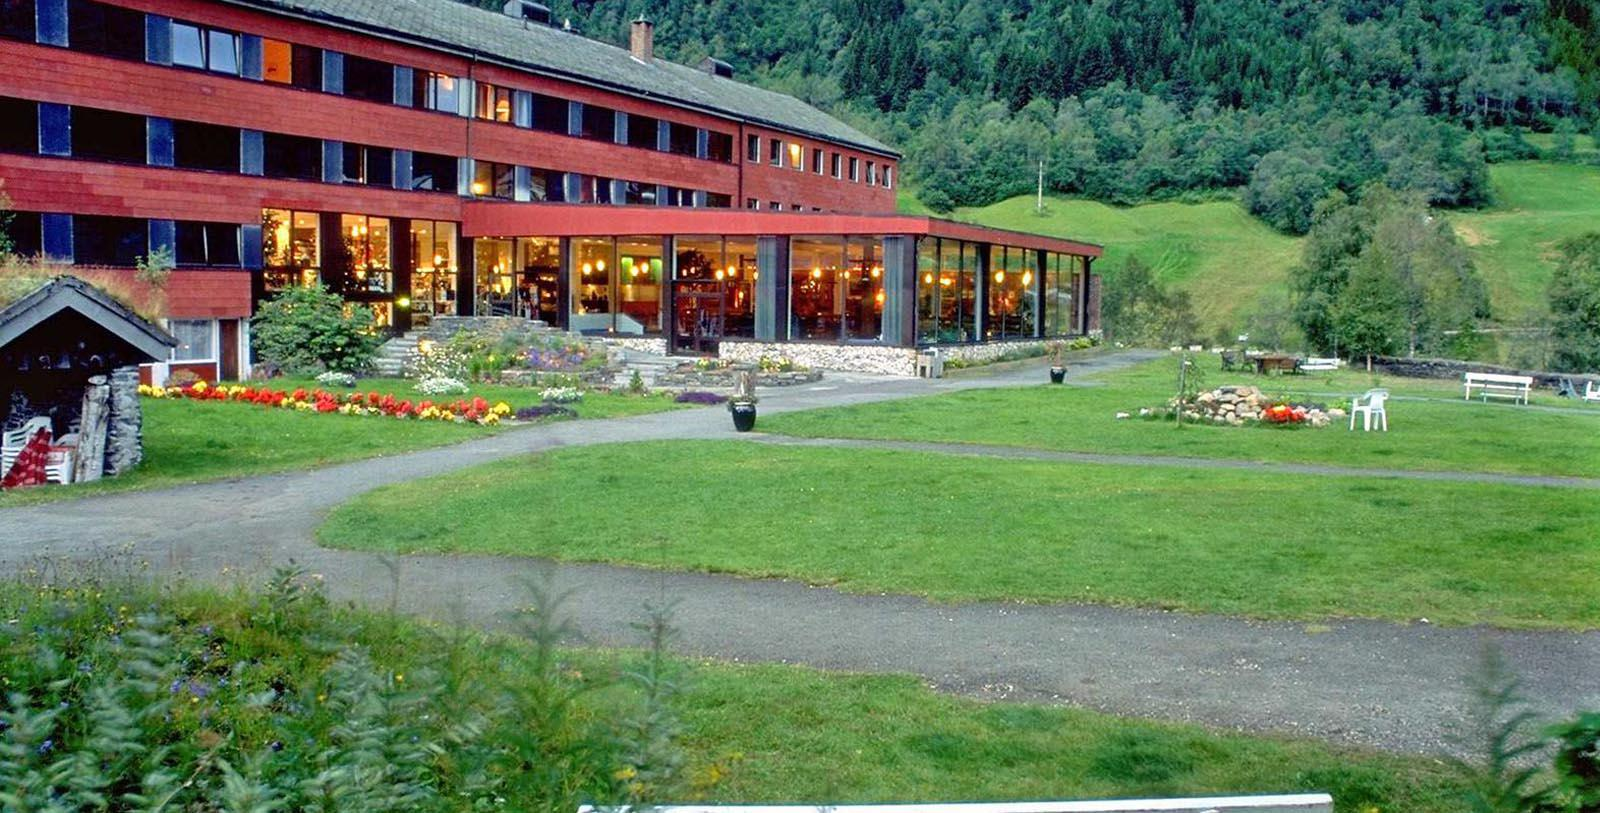 Image of Hotel Exterior Stalheim Hotel, 1750, Member of Historic Hotels Worldwide, in Stalheim, Norway, Overview